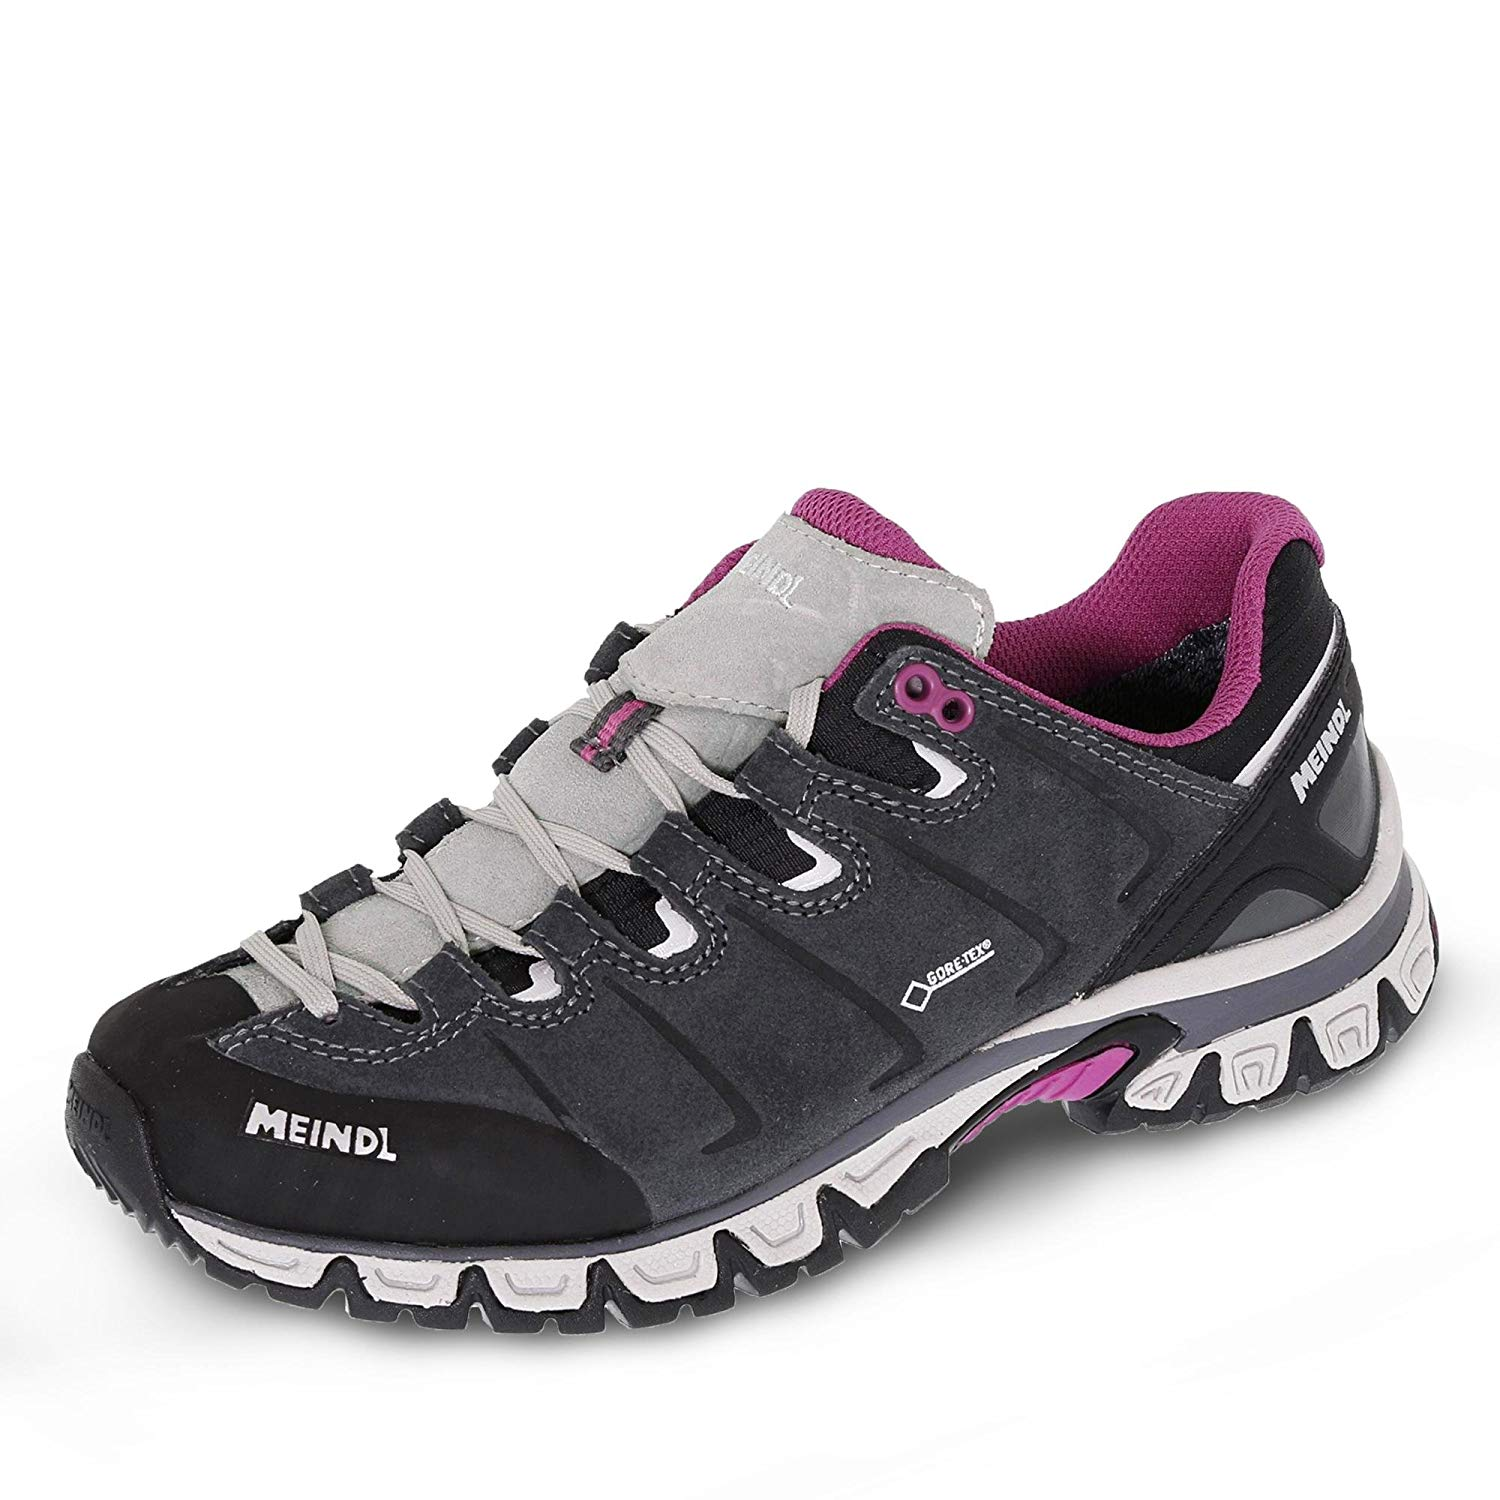 low priced 3f29b b5123 Meindl Pargos Lady GTX - Damen Wanderschuhe GoreTex Outdoorschuhe 9205-31  grau